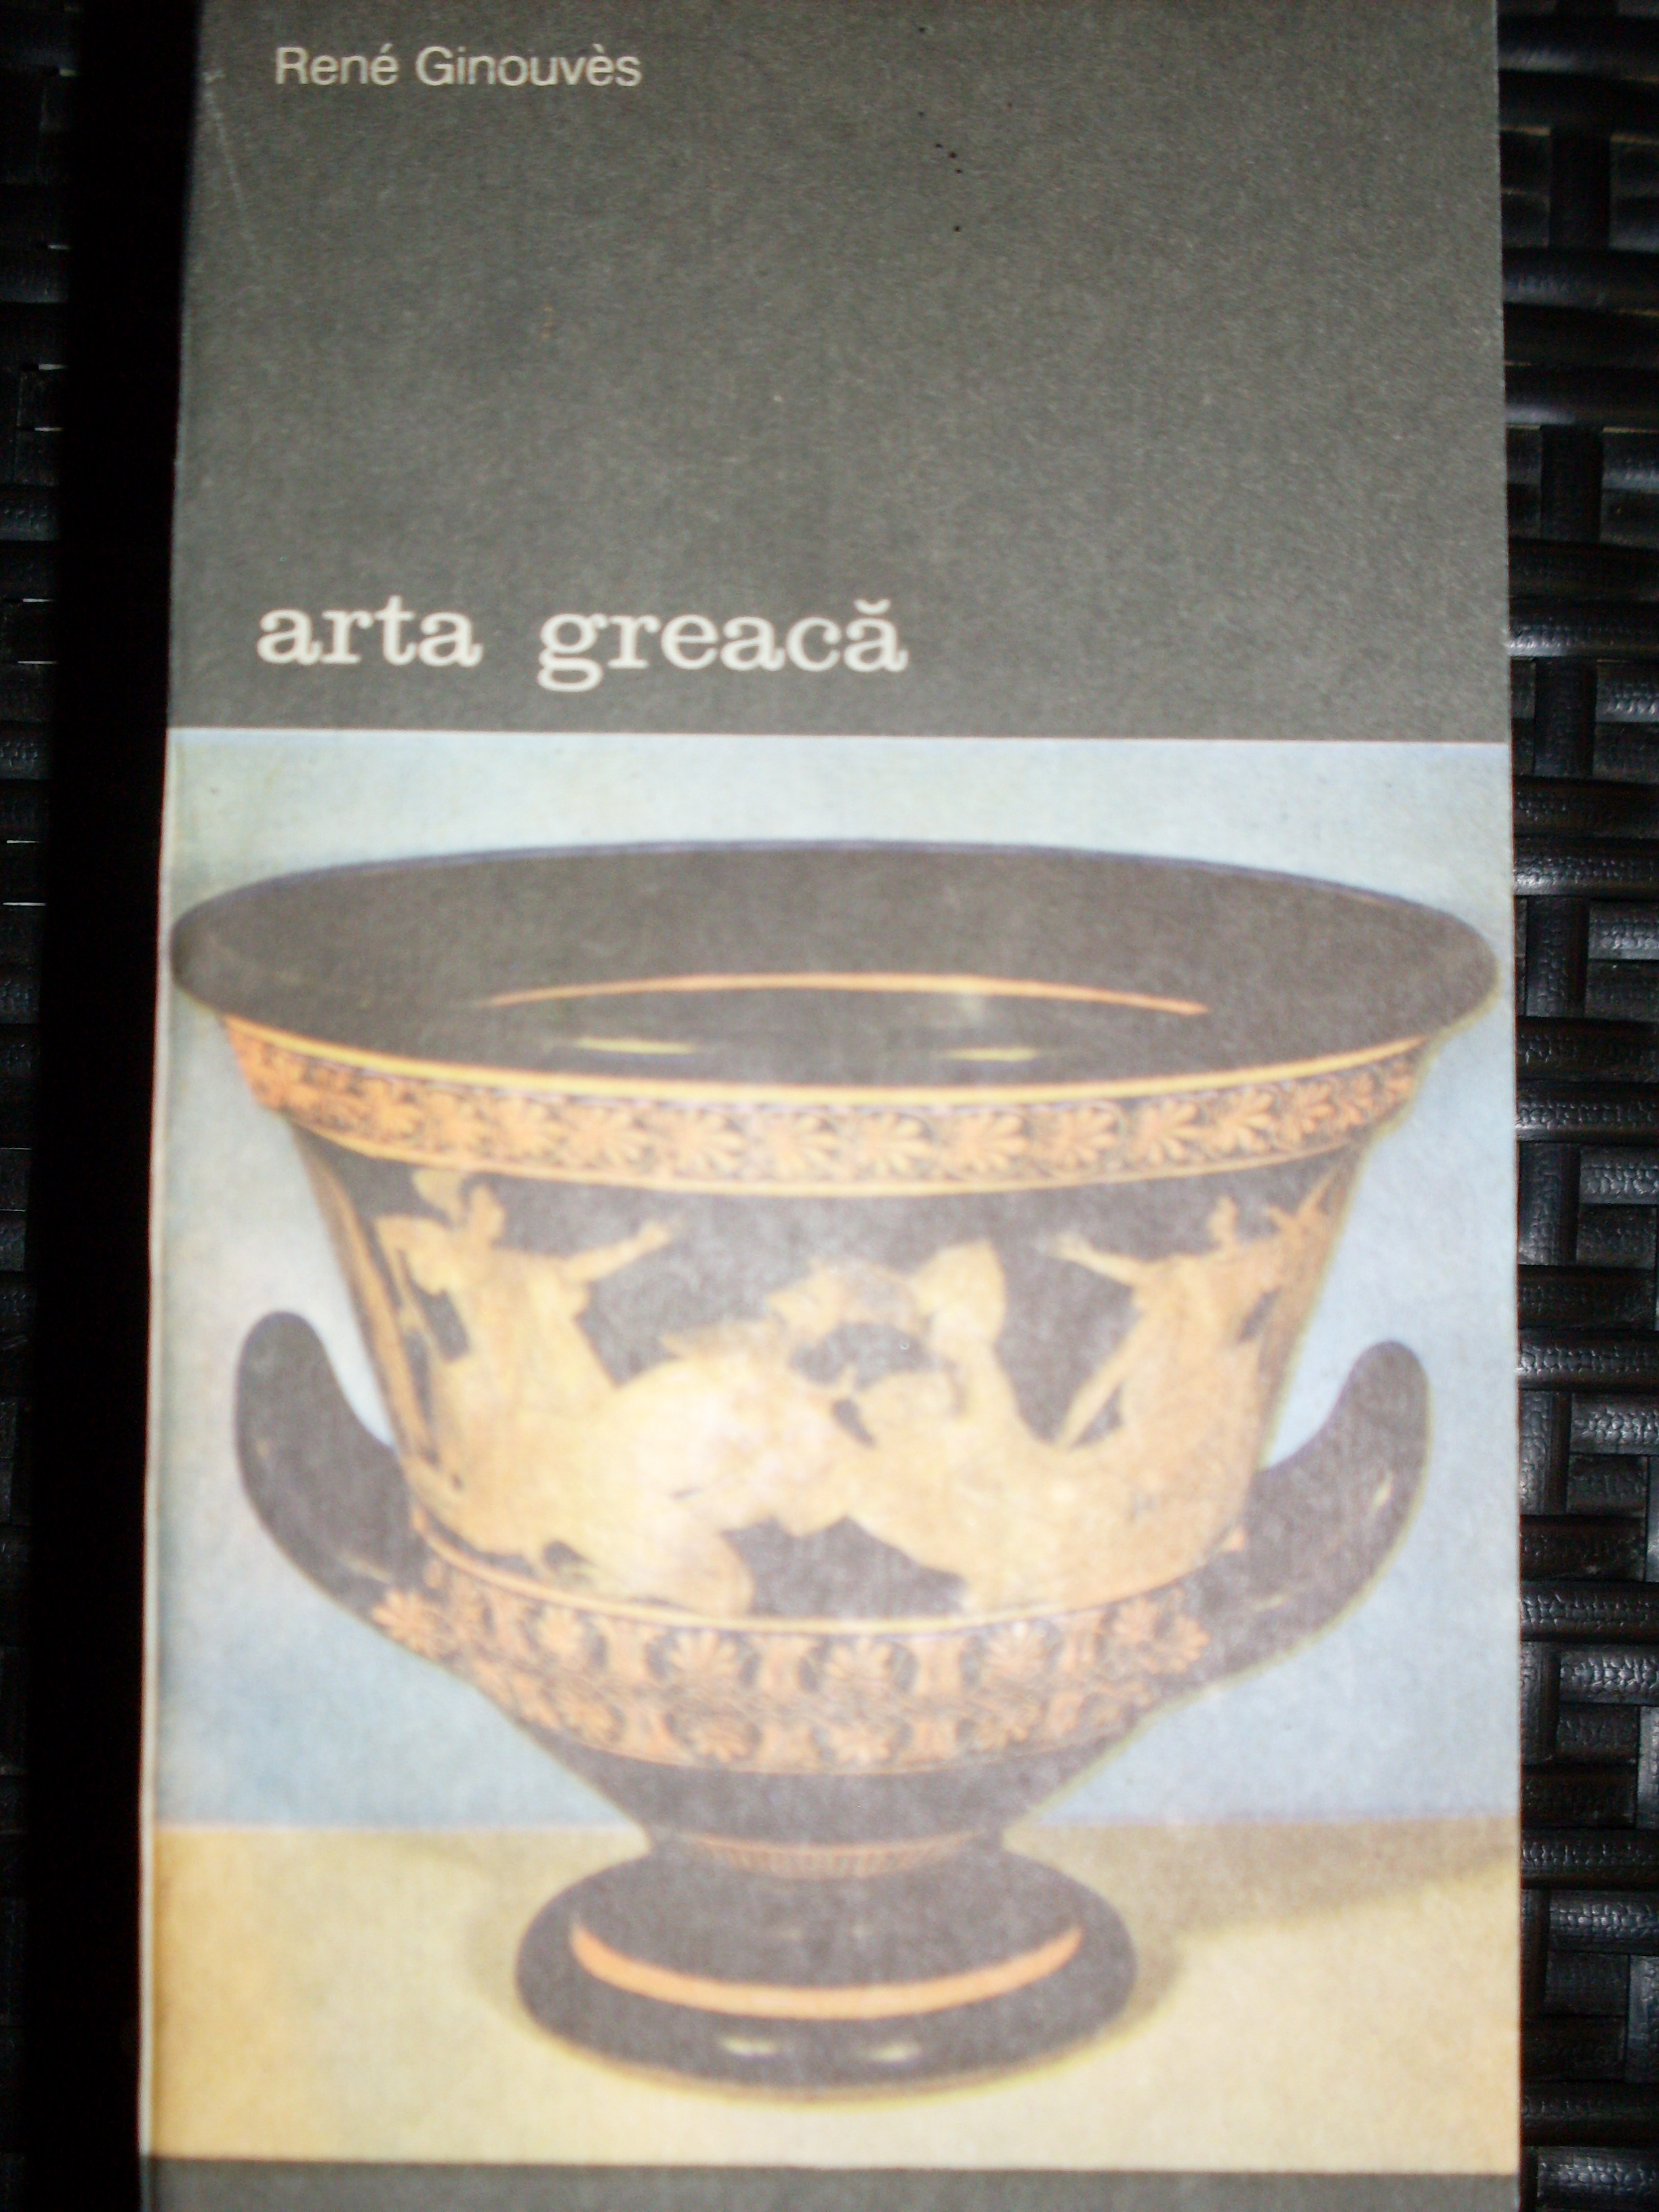 arta greaca                                                                                          rene ginouves